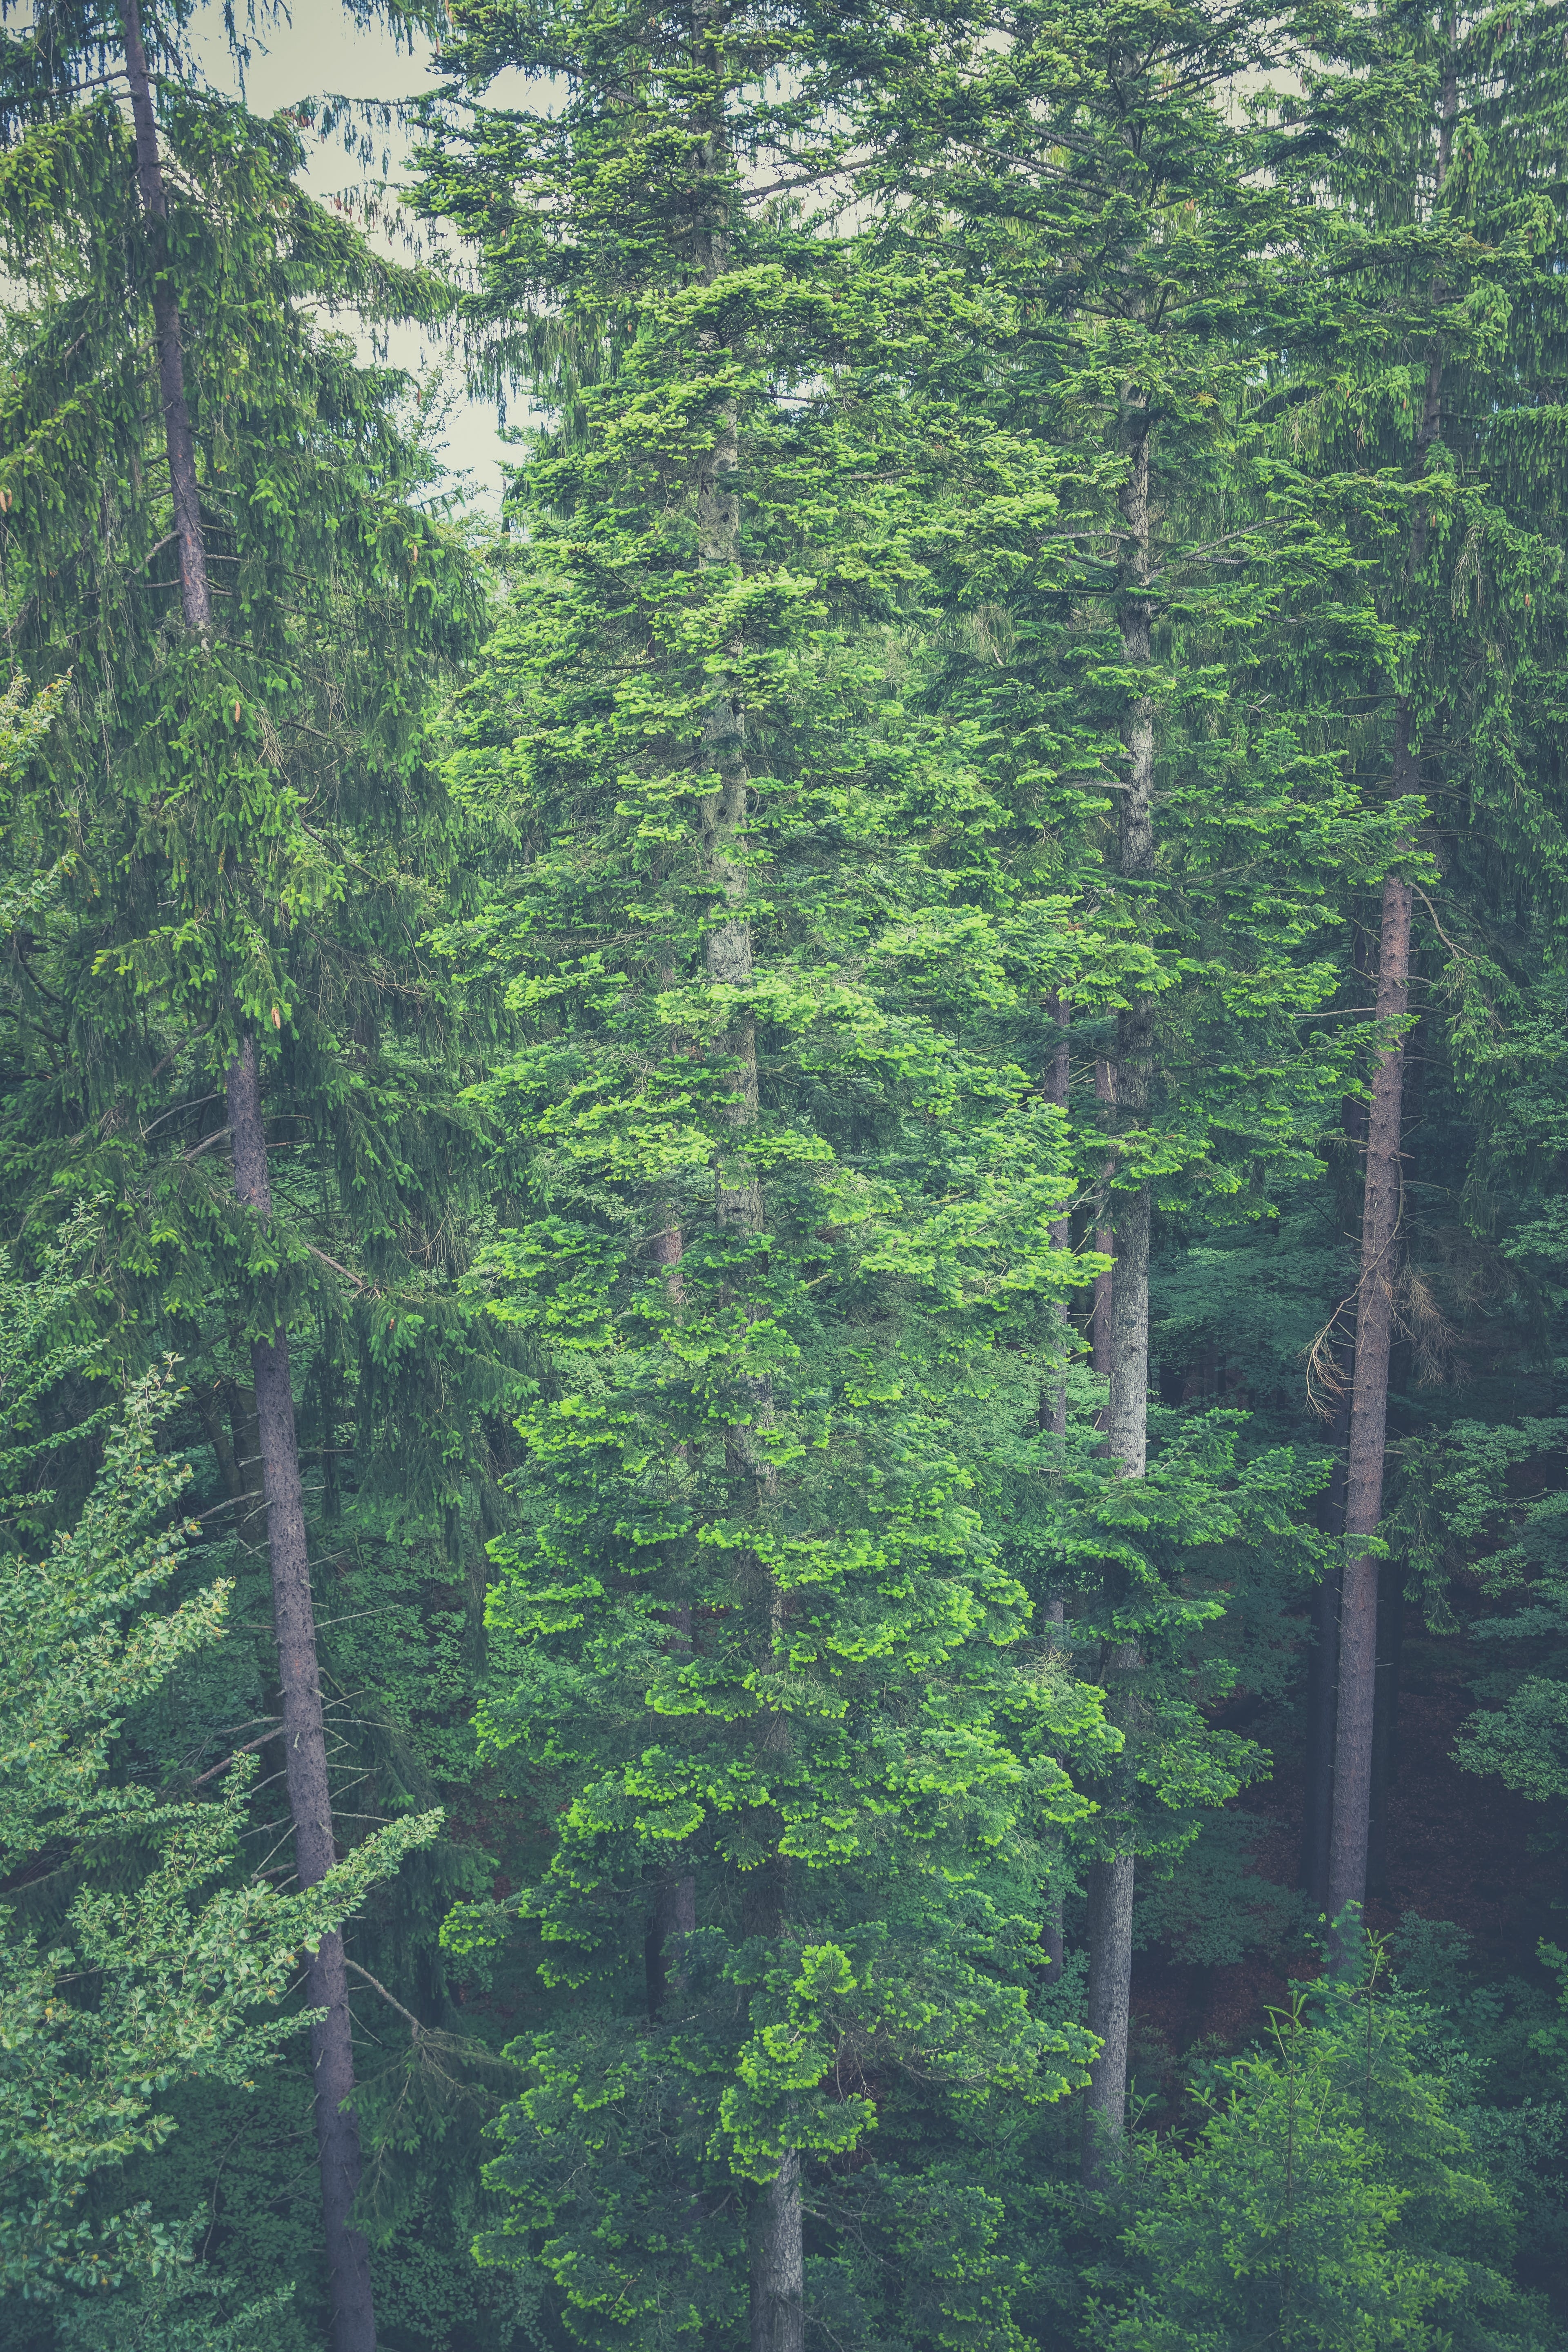 Aerial View of Tall Trees in the Woods